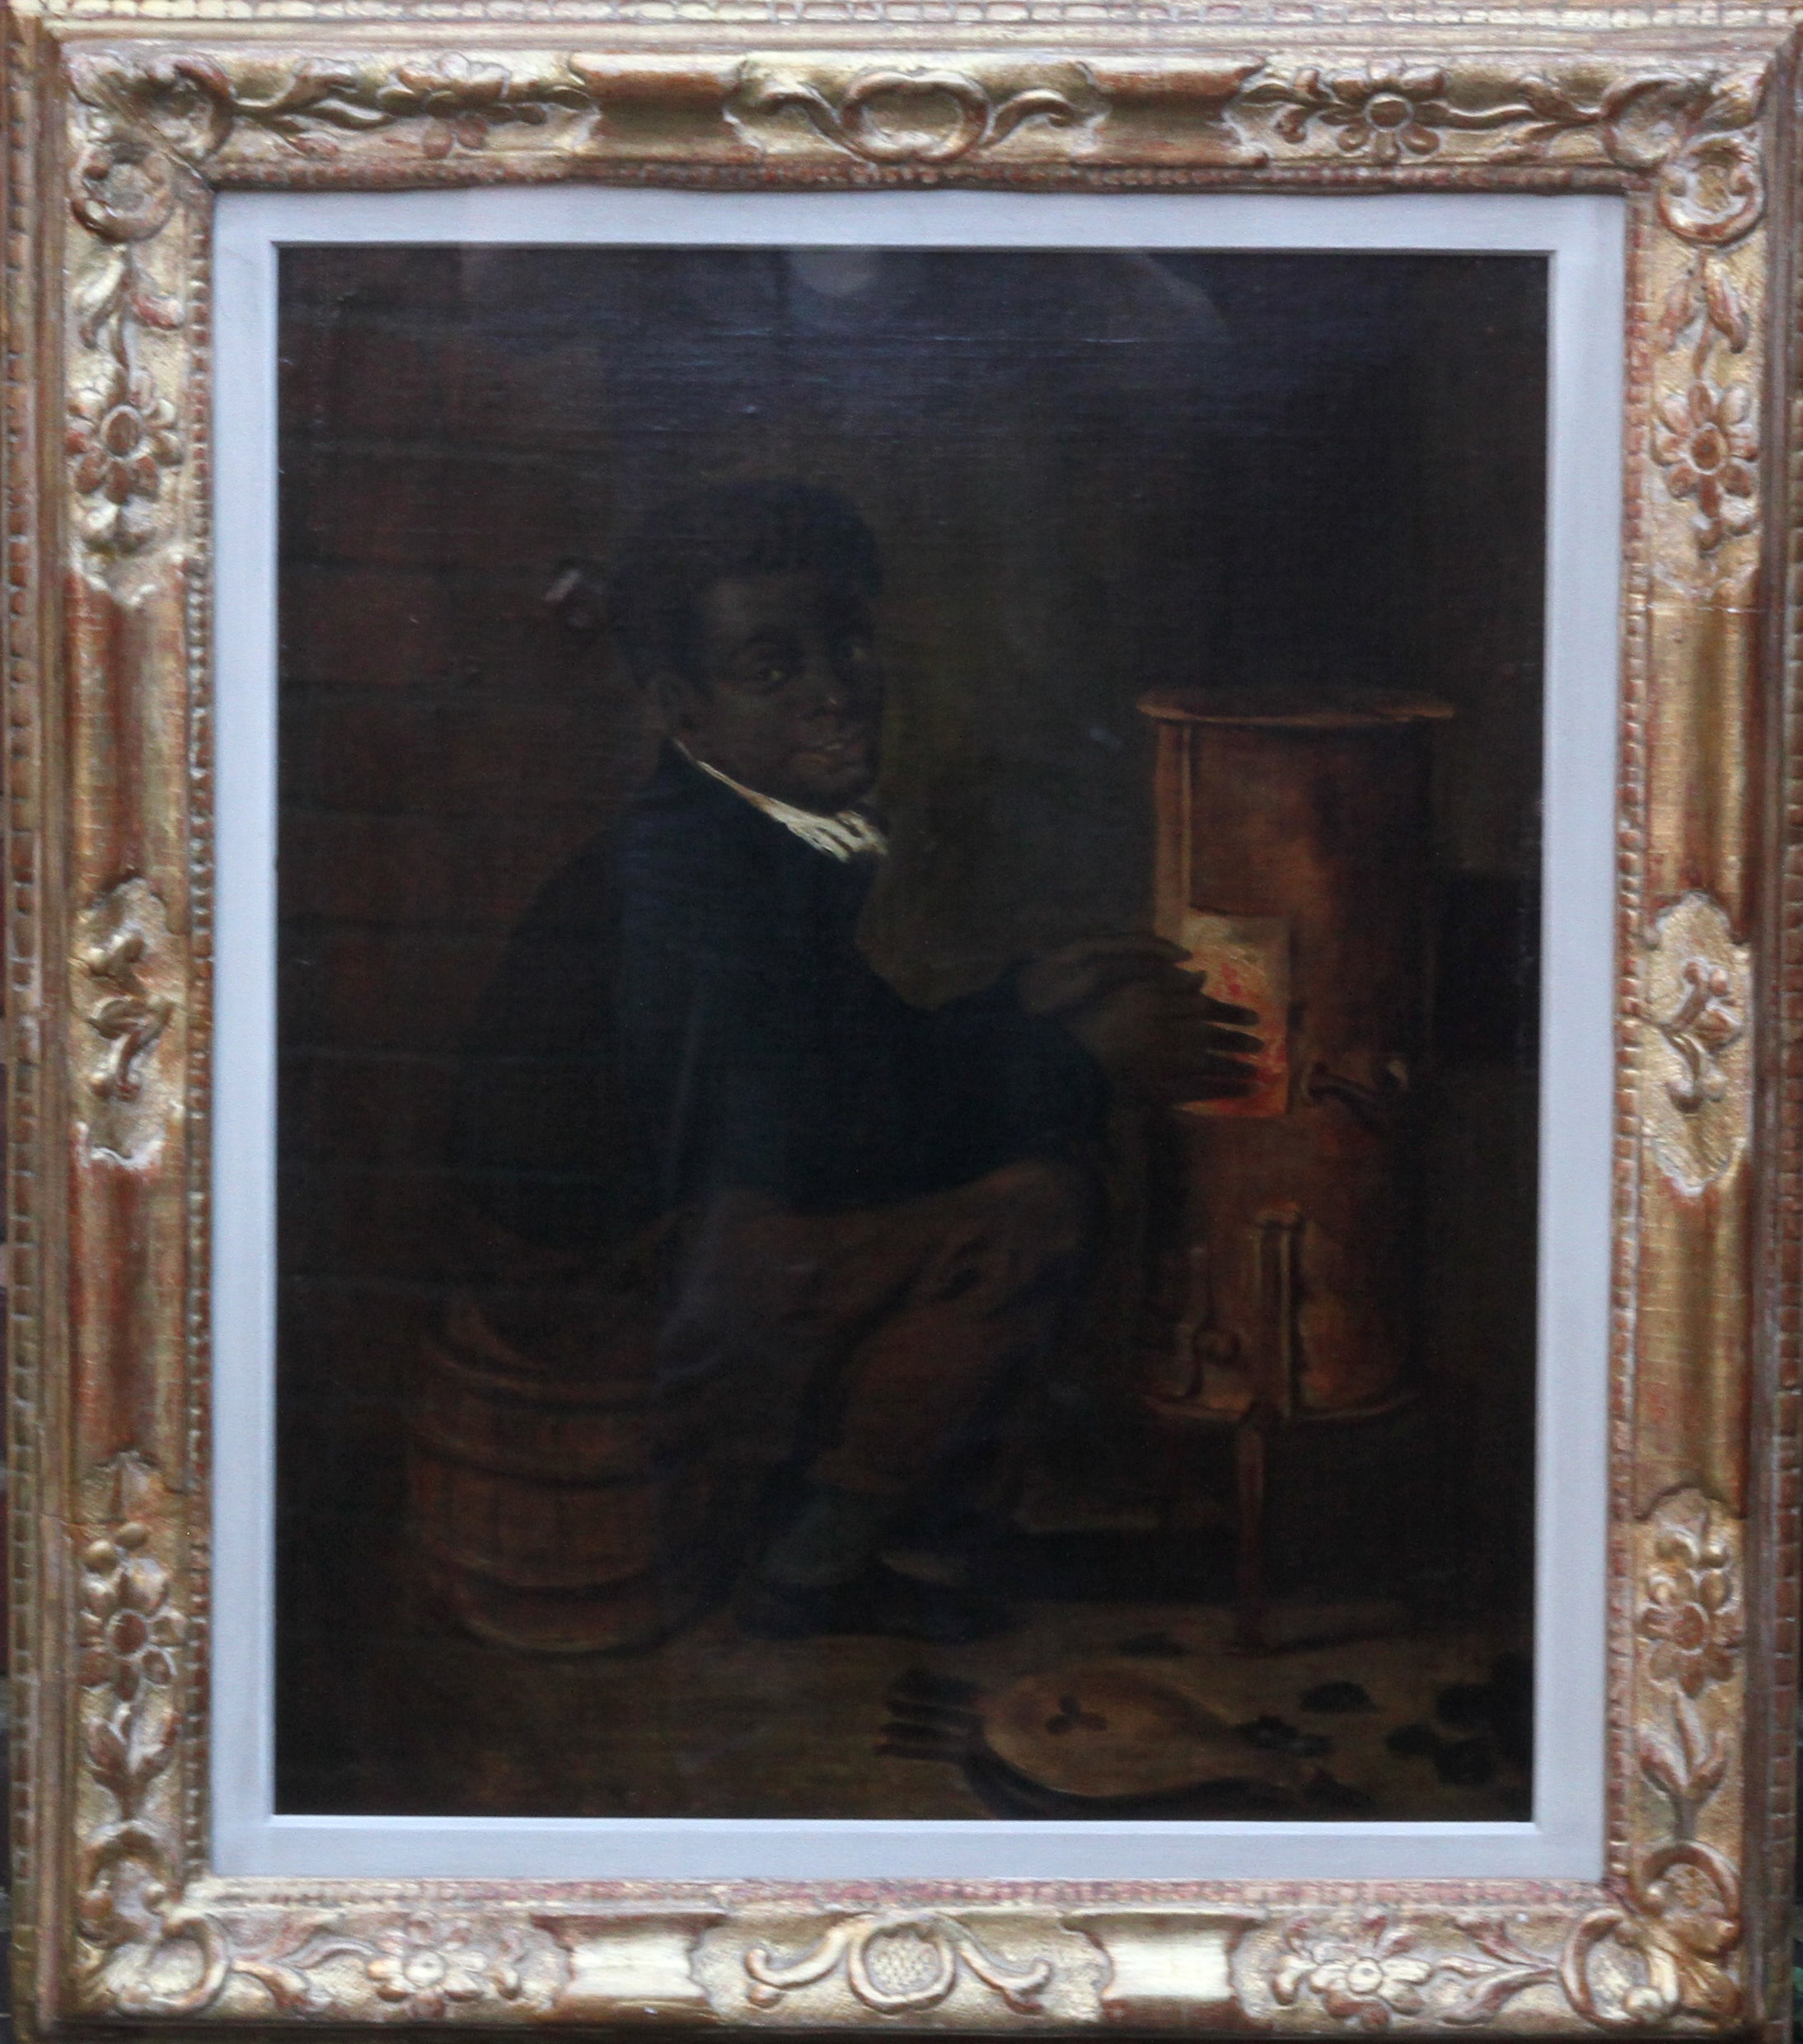 Black Boy Warming Himself by Stove - American School 19thC portrait oil painting